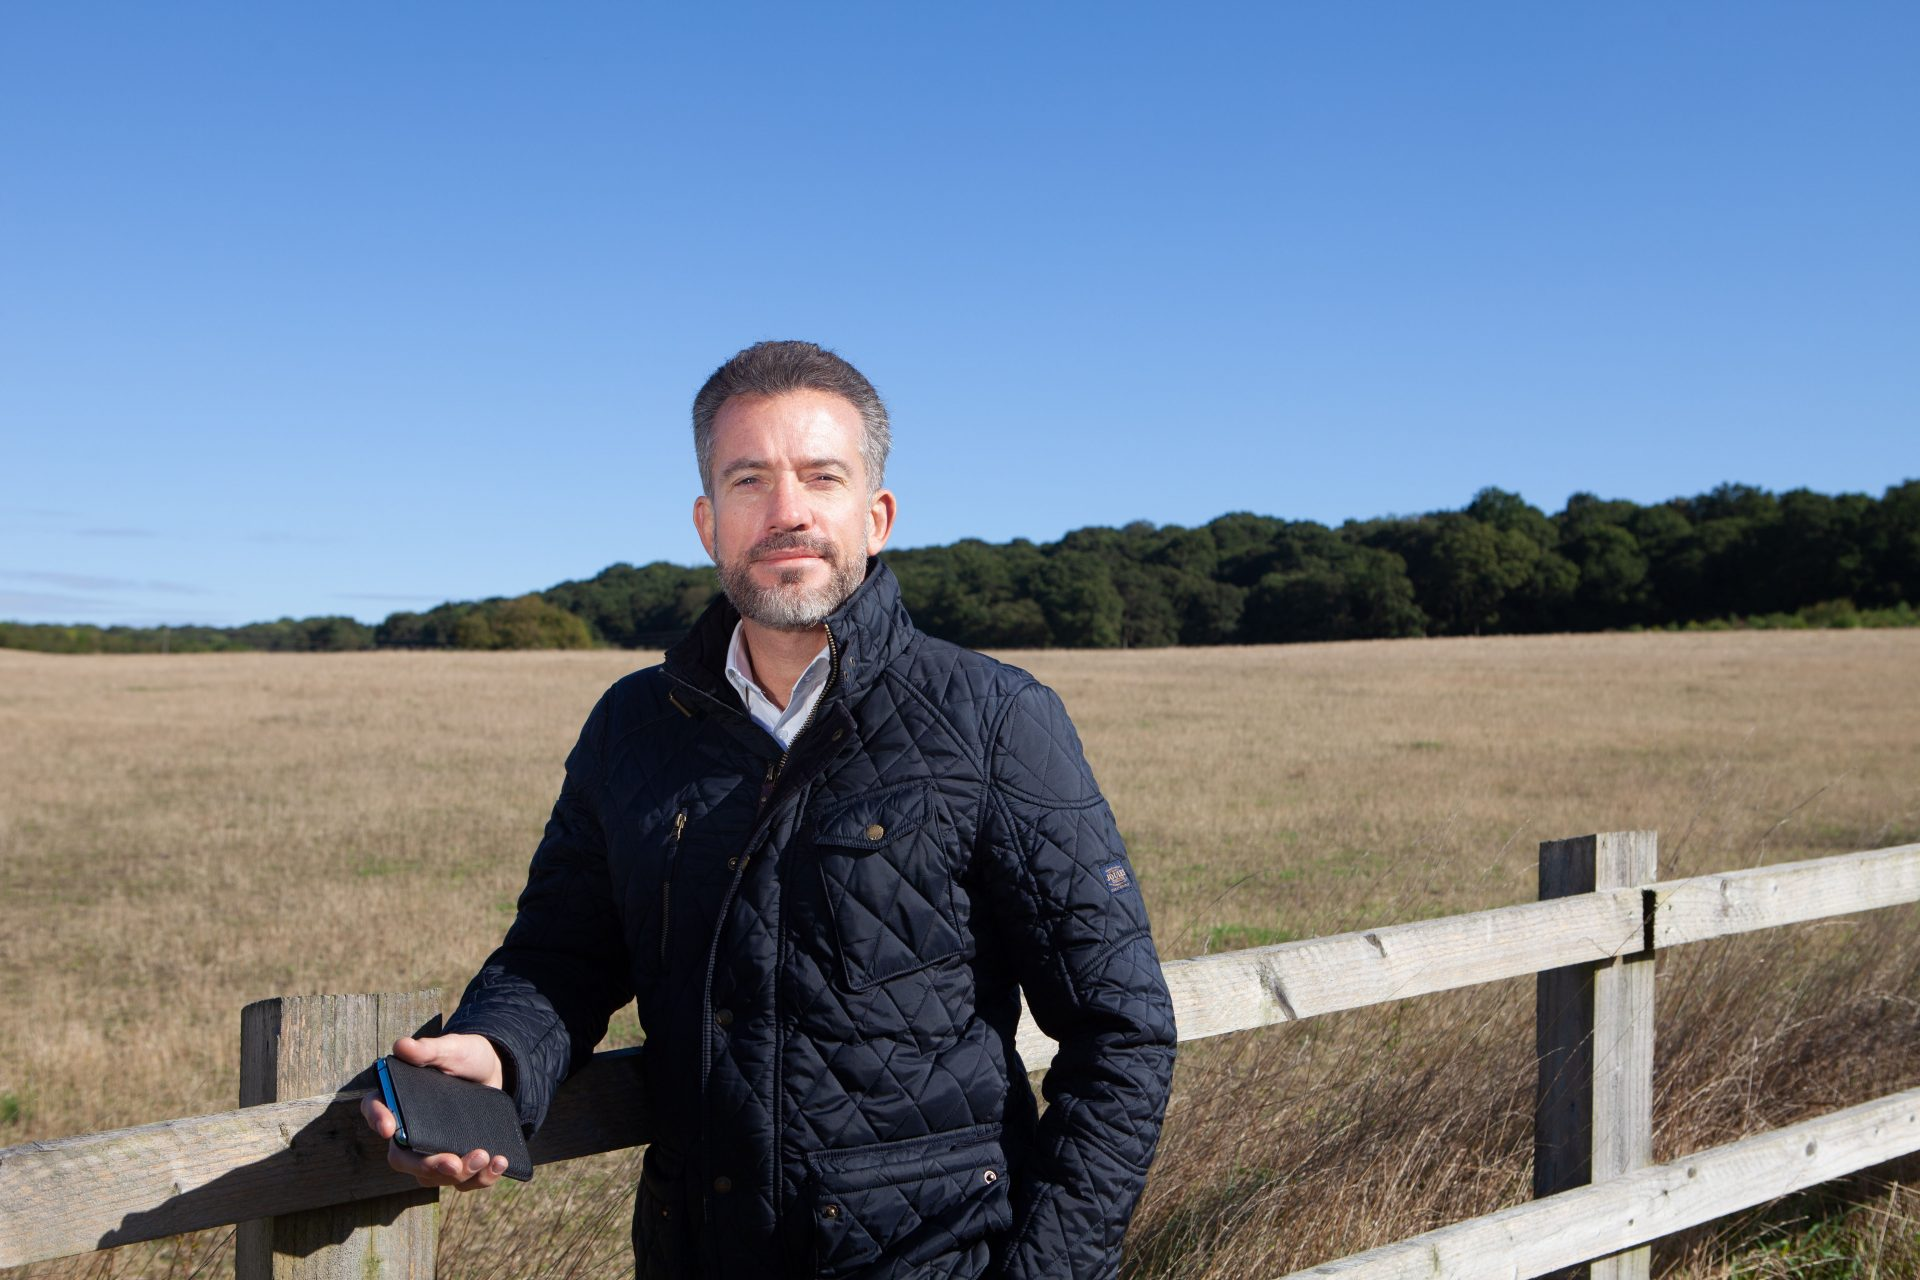 Vodafone UK CEO Nick Jeffery in rural setting